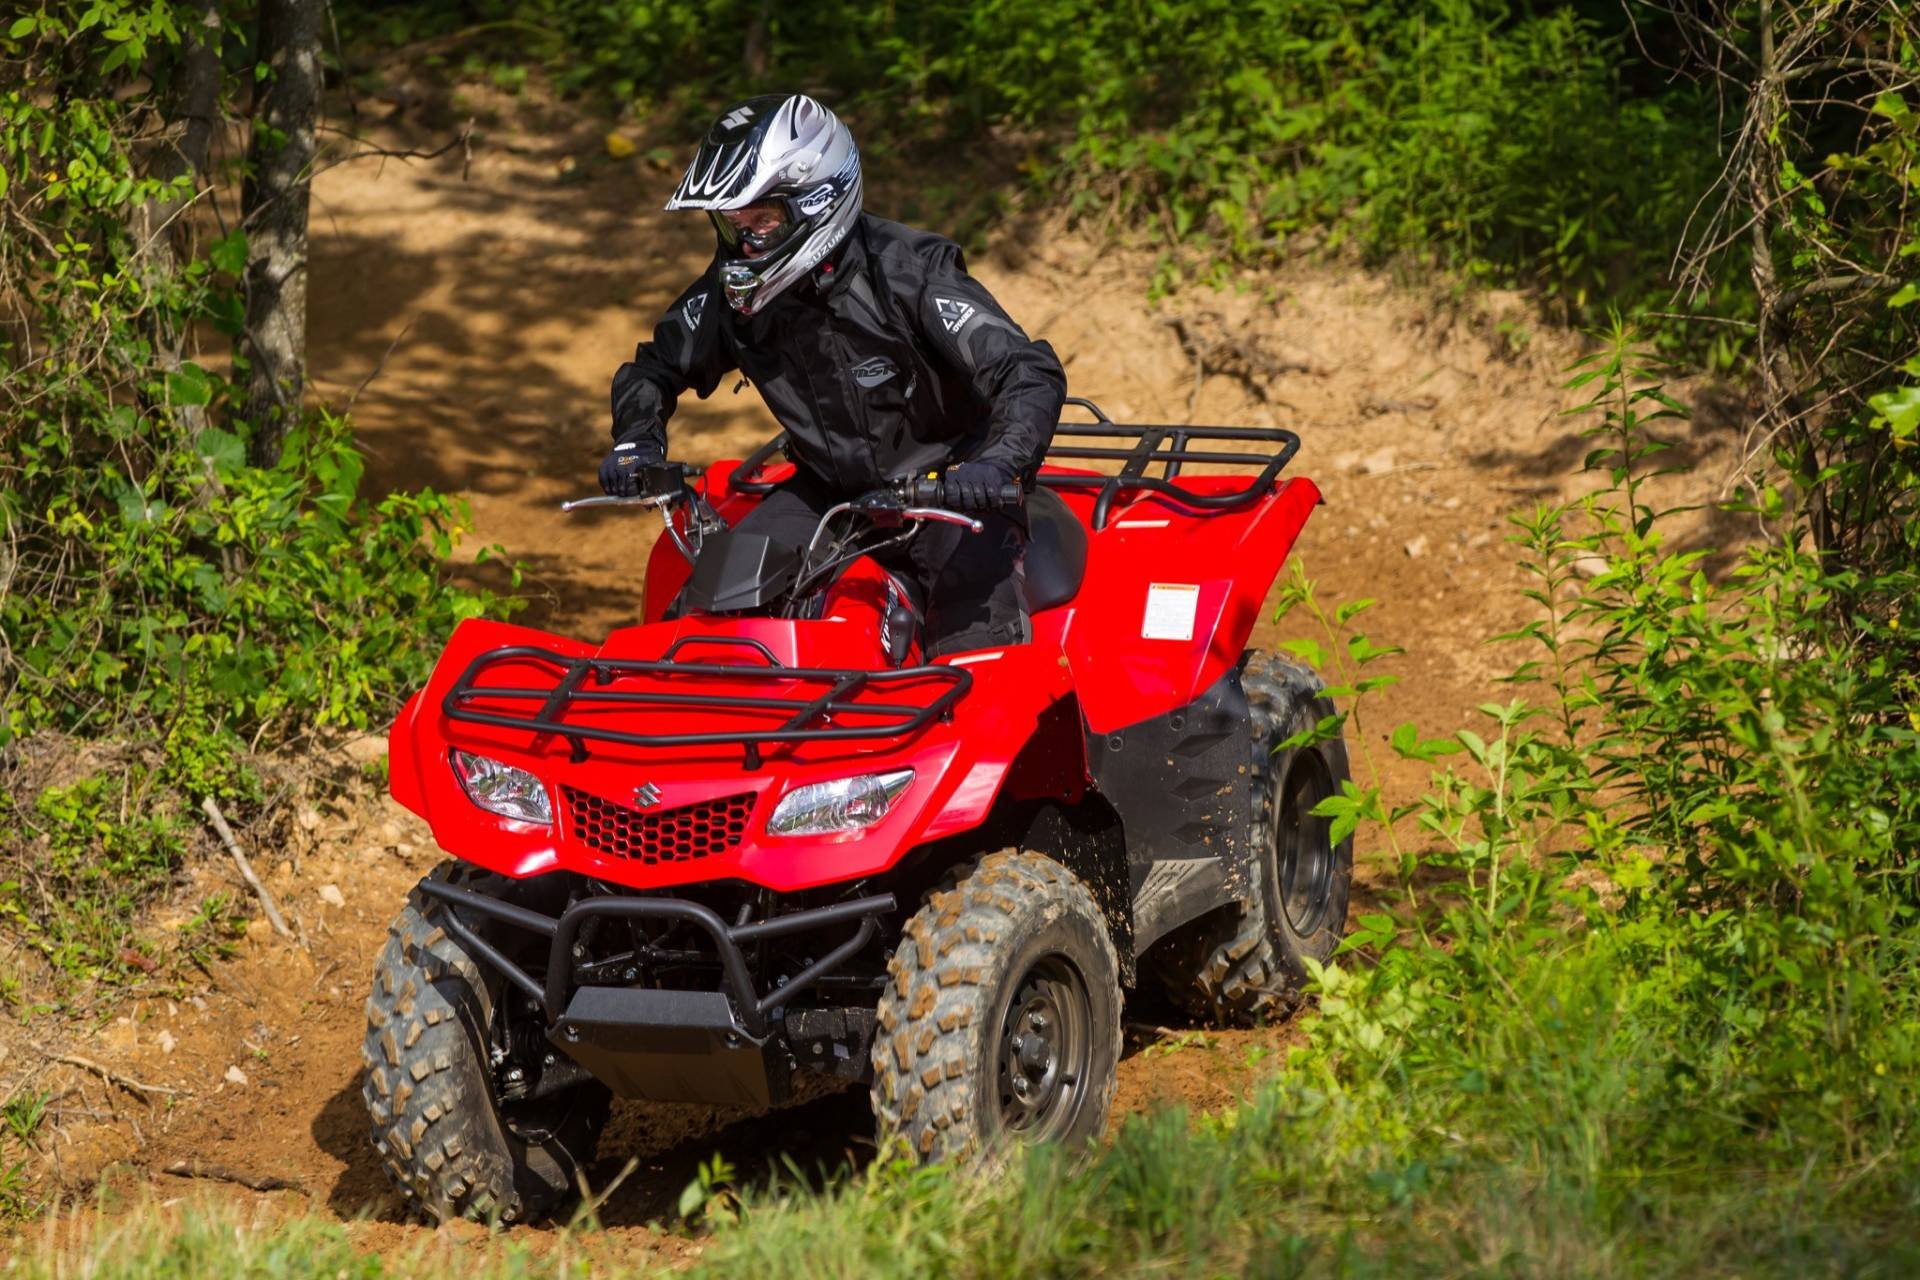 2017 Suzuki KingQuad 400ASi for sale 2072